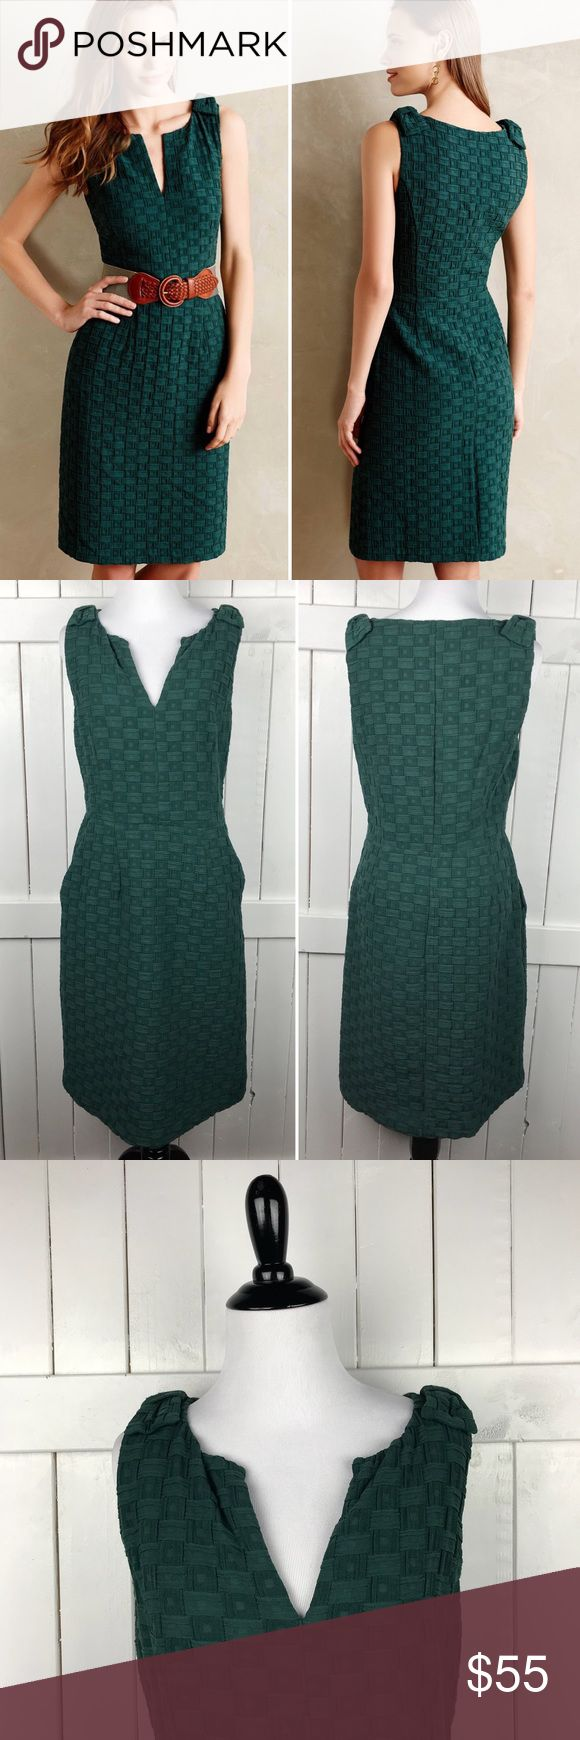 Anthropologie Tabitha Green Quilted Tema Dress Beautiful hunter green quilted tema dress from Anthropologie brand Tabitha. Size 6. Excellent pre worn condition! No trades or try ons please! Anthropologie Dresses